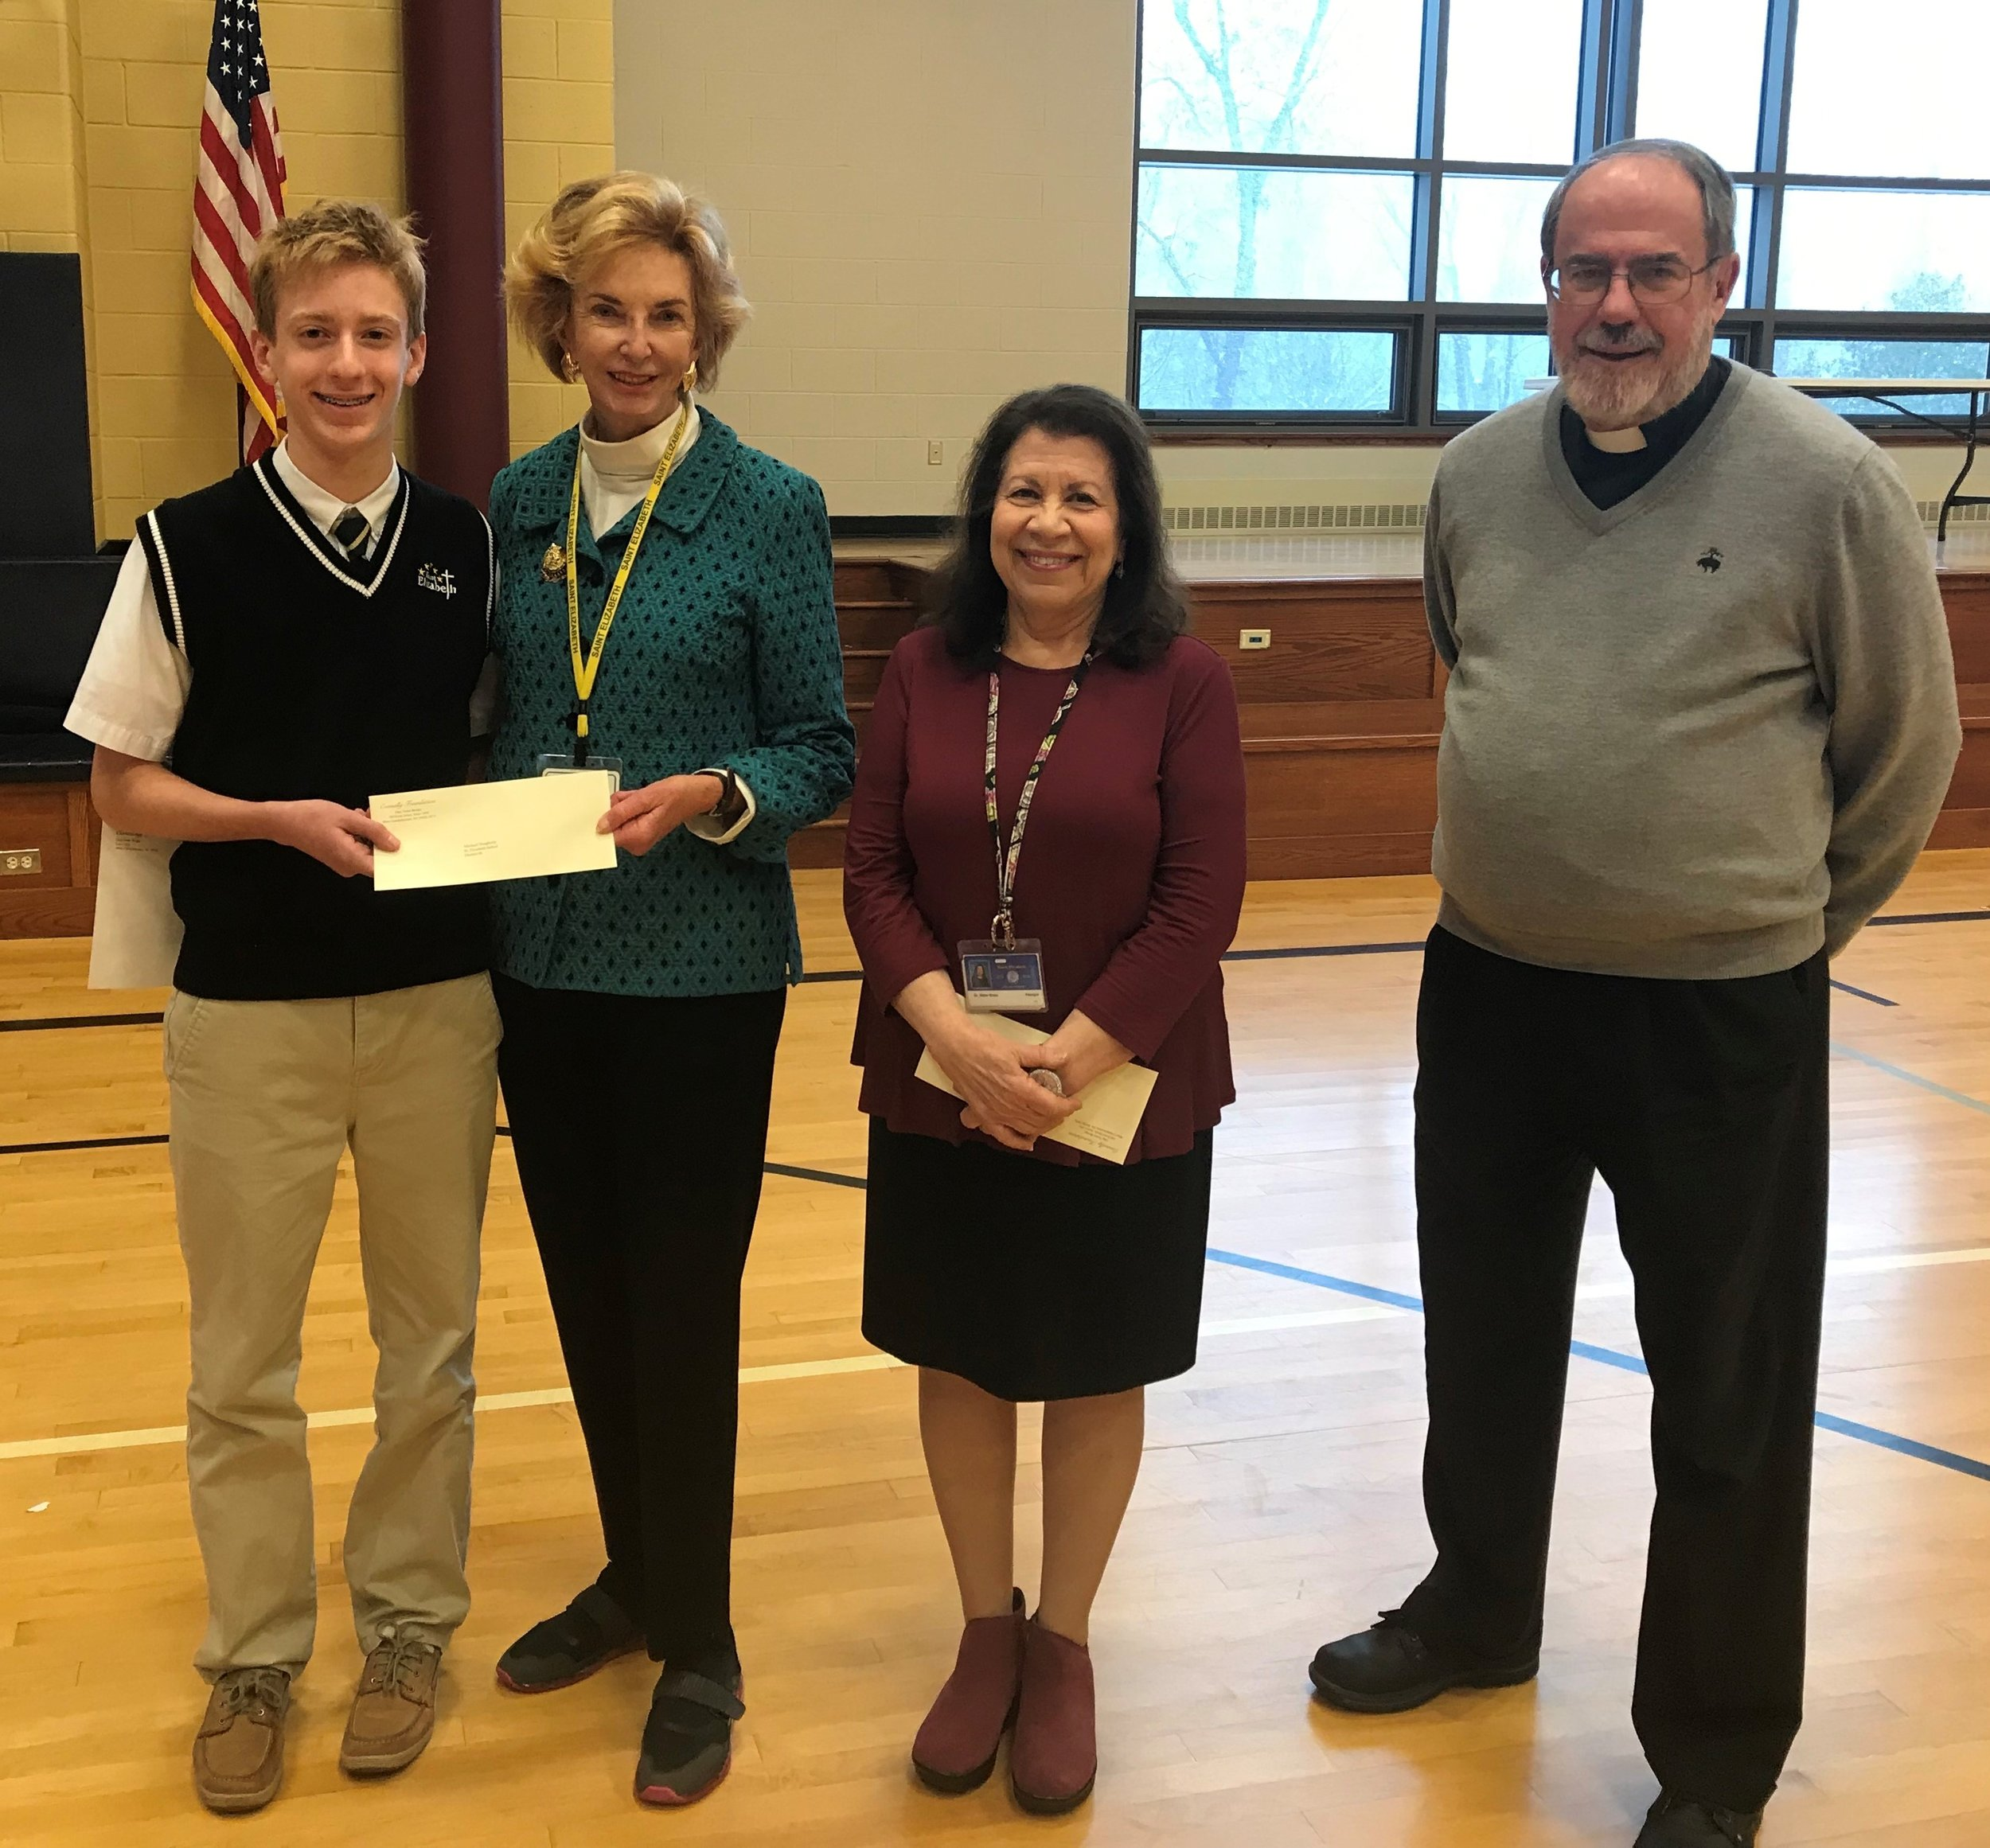 Class of 2019 Neumann Scholar Michael Dougherty (left), with Mrs. Josephine Mandeville, Chair of the Board of the Connelly Foundation, Dr. Diane Greco, Principal and Father Thomas M. Mullin, Pastor.